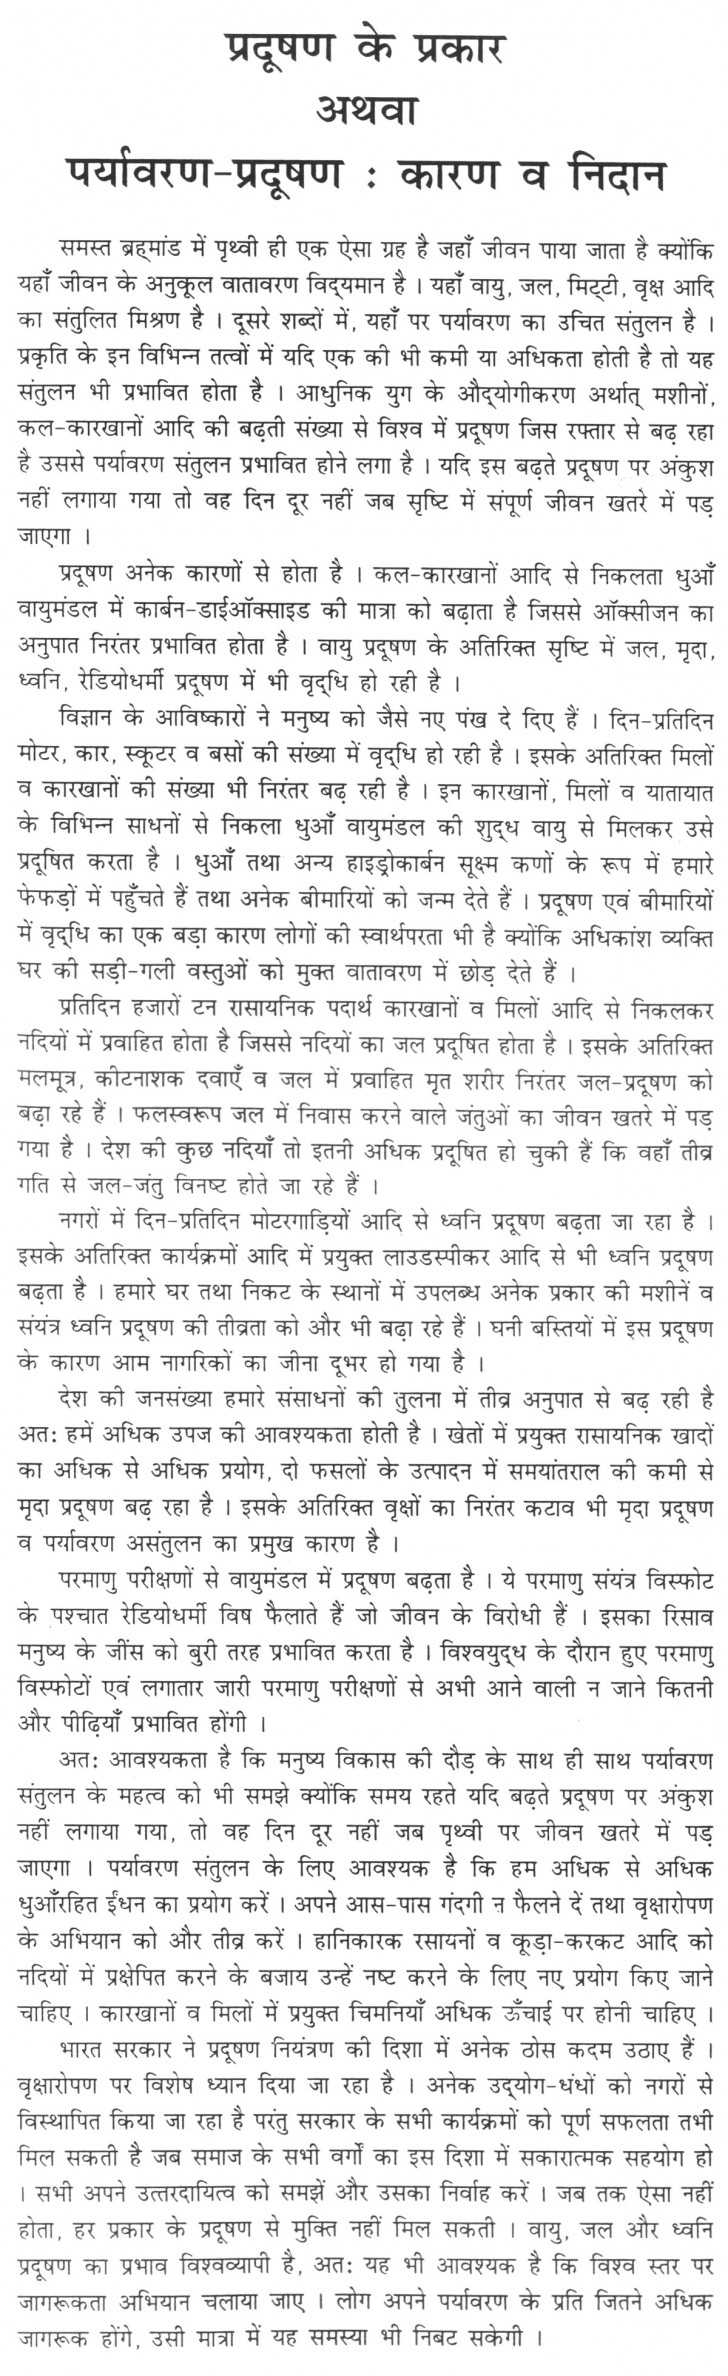 014 Good Habits Essay In Hindi Exceptional Reading Habit Wikipedia 728